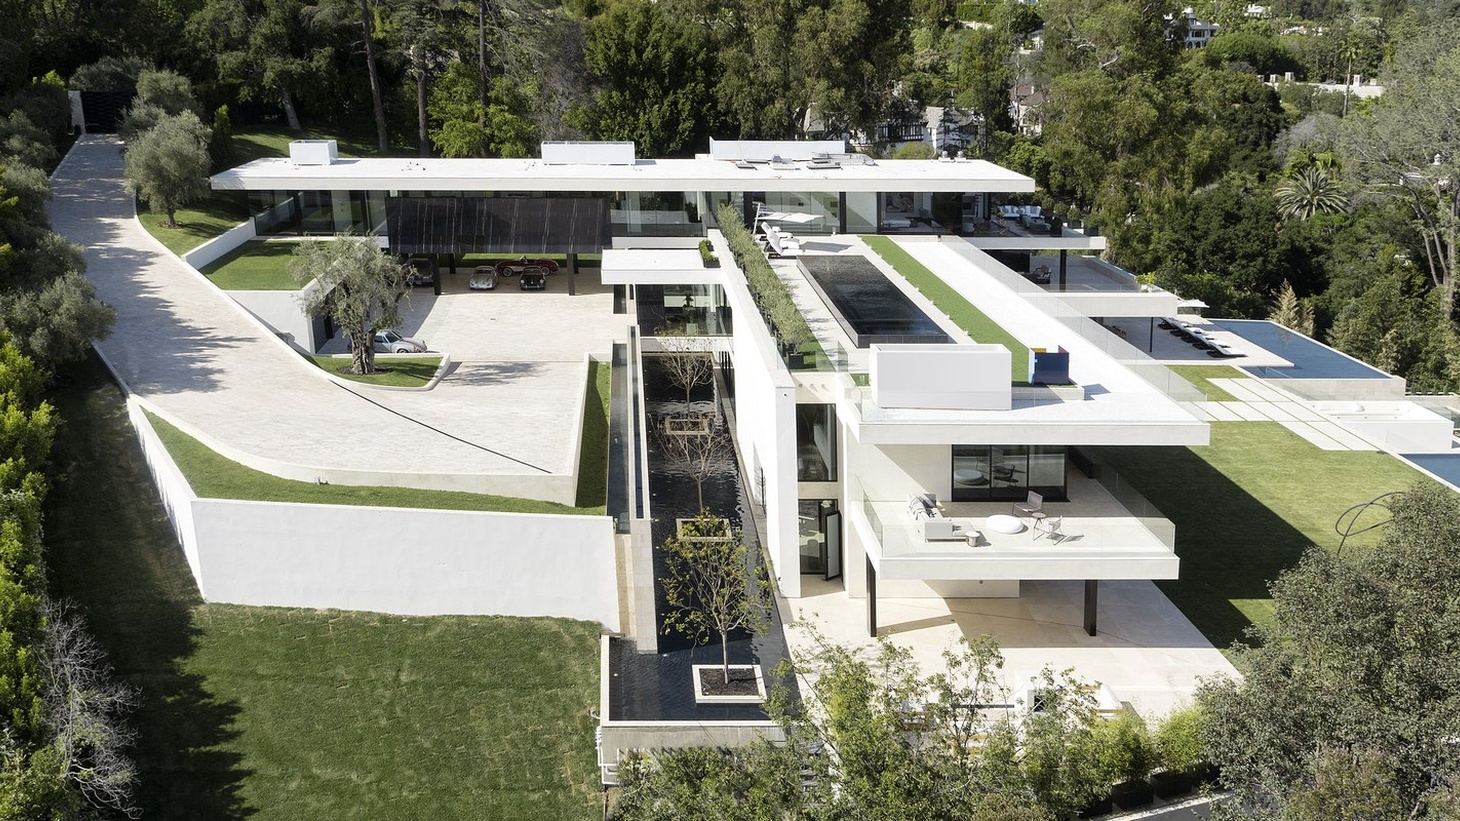 The Paul McClean designed Bel Air home built for Beyoncé and Jay Z.